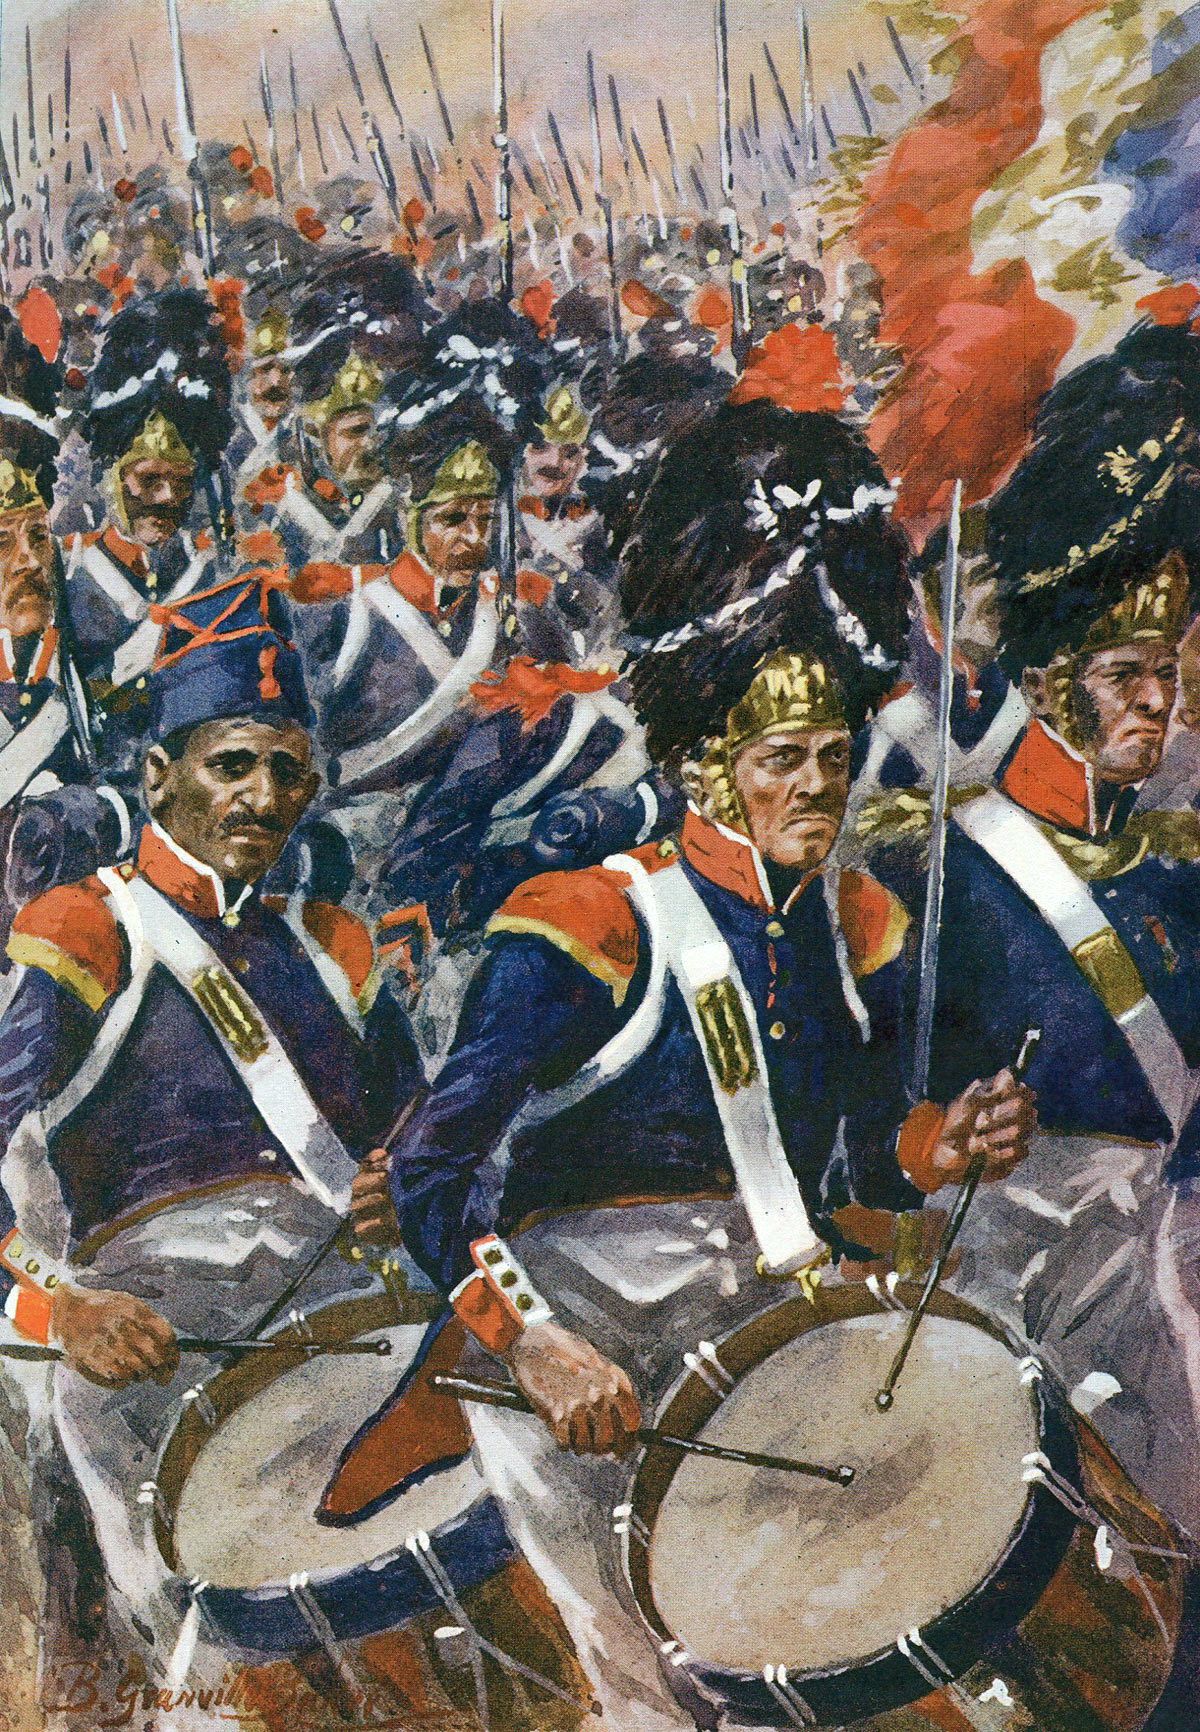 French infantry advancing at the Battle of Barossa or Chiclana fought on 5th March 1811 in the Peninsular War: picture by R. Granville Baker